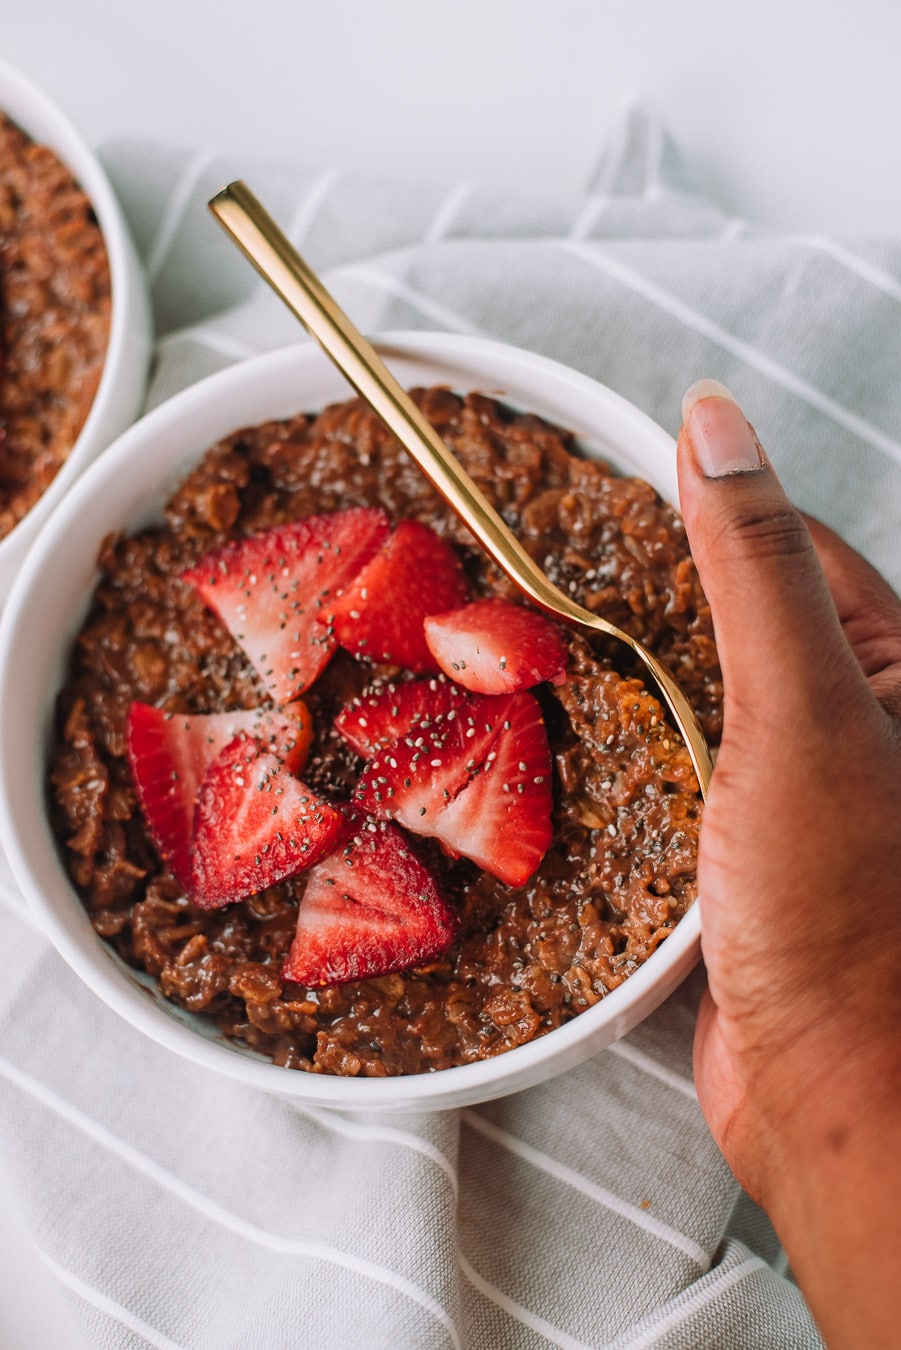 Hand holding a thick of bowl of chocolate oatmeal with strawberries and chia seeds.